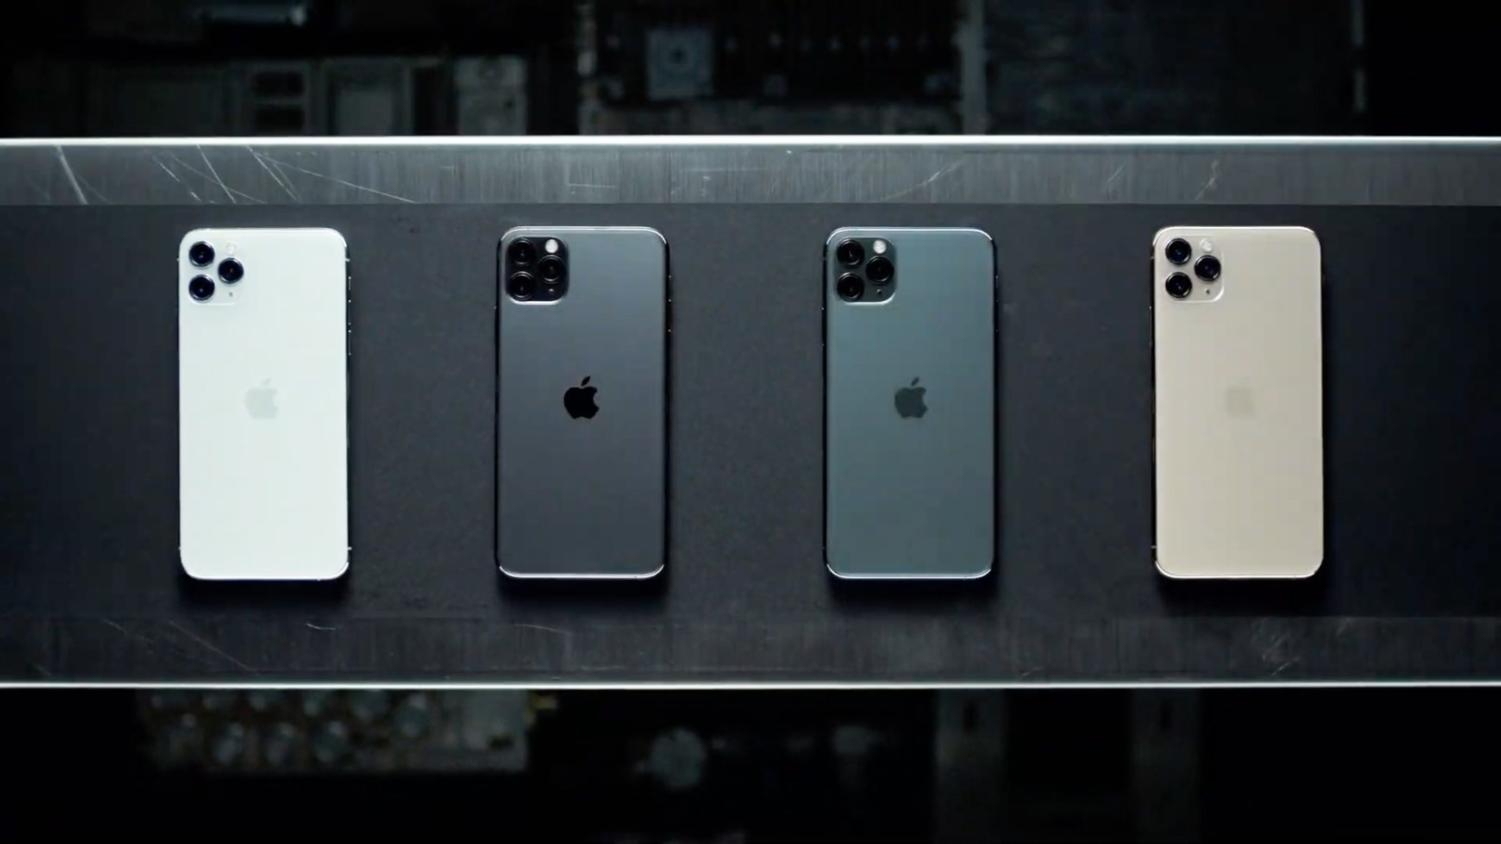 Photo credit- https://www.wired.com/story/apple-iphone-11/